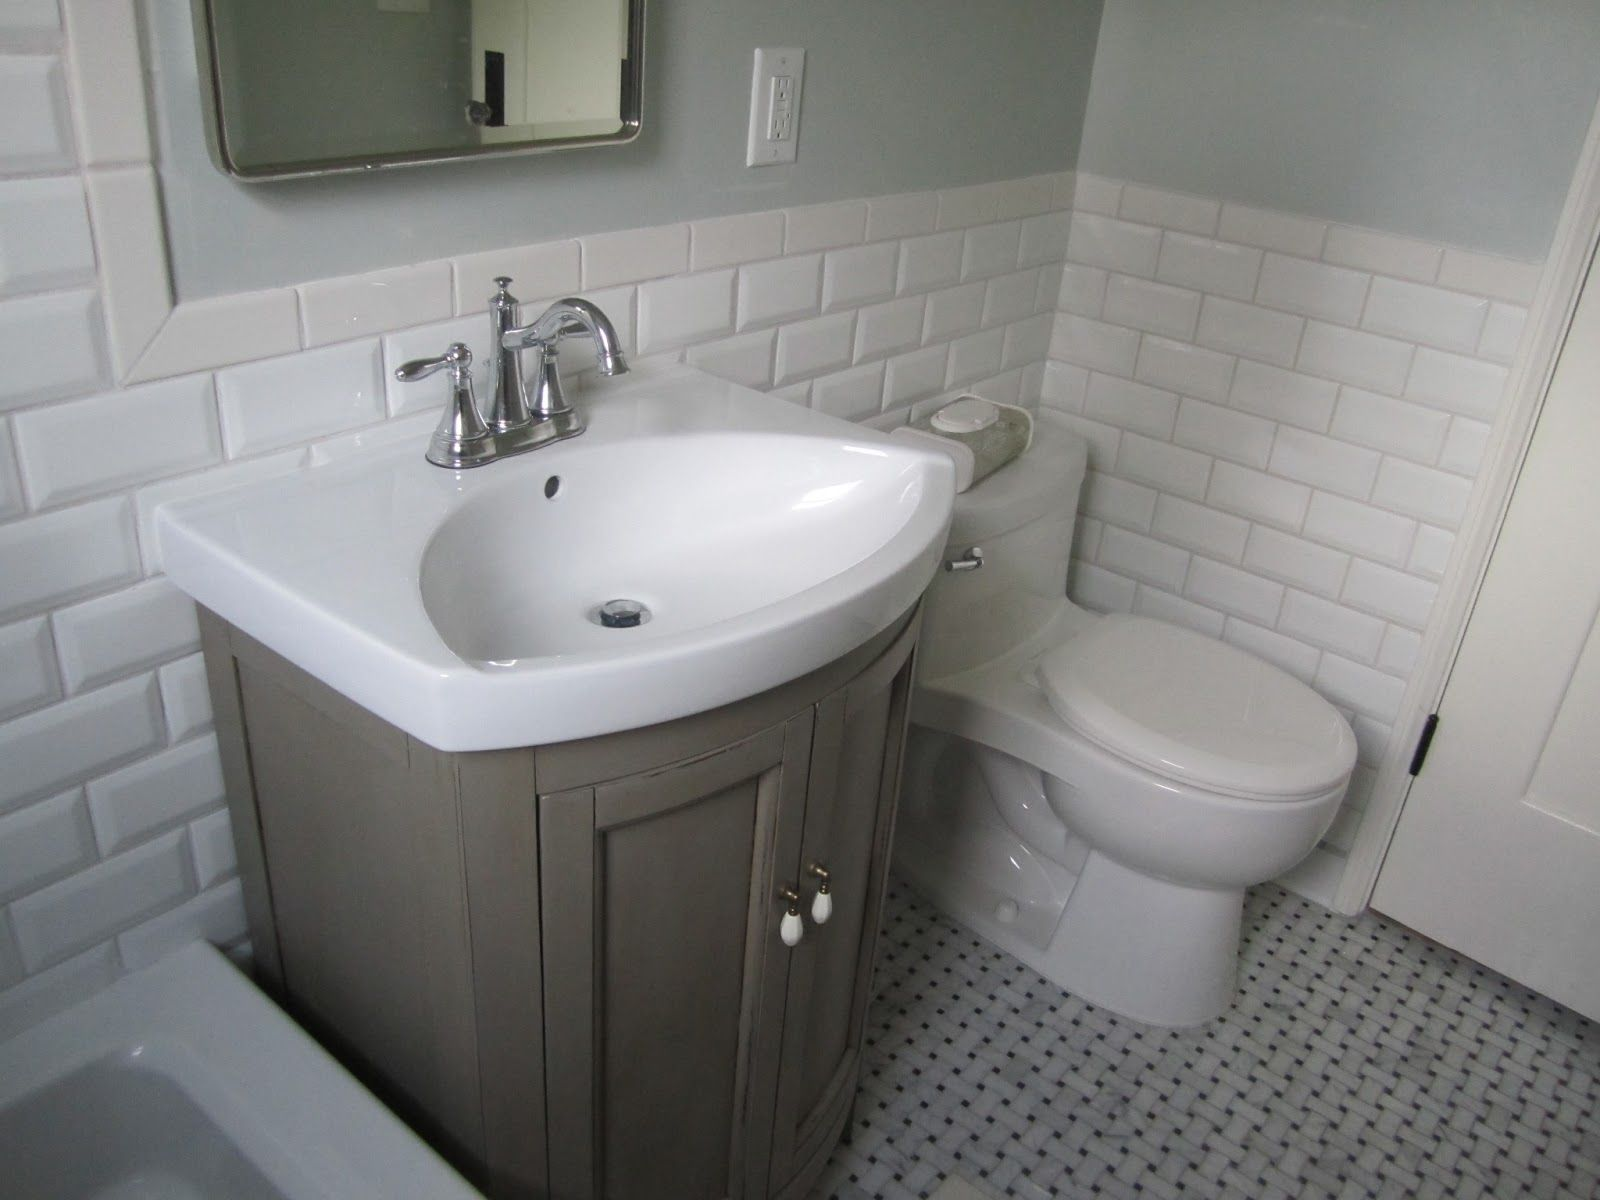 Classy White Subway Ceramic Bath Wall Tiled And Gray